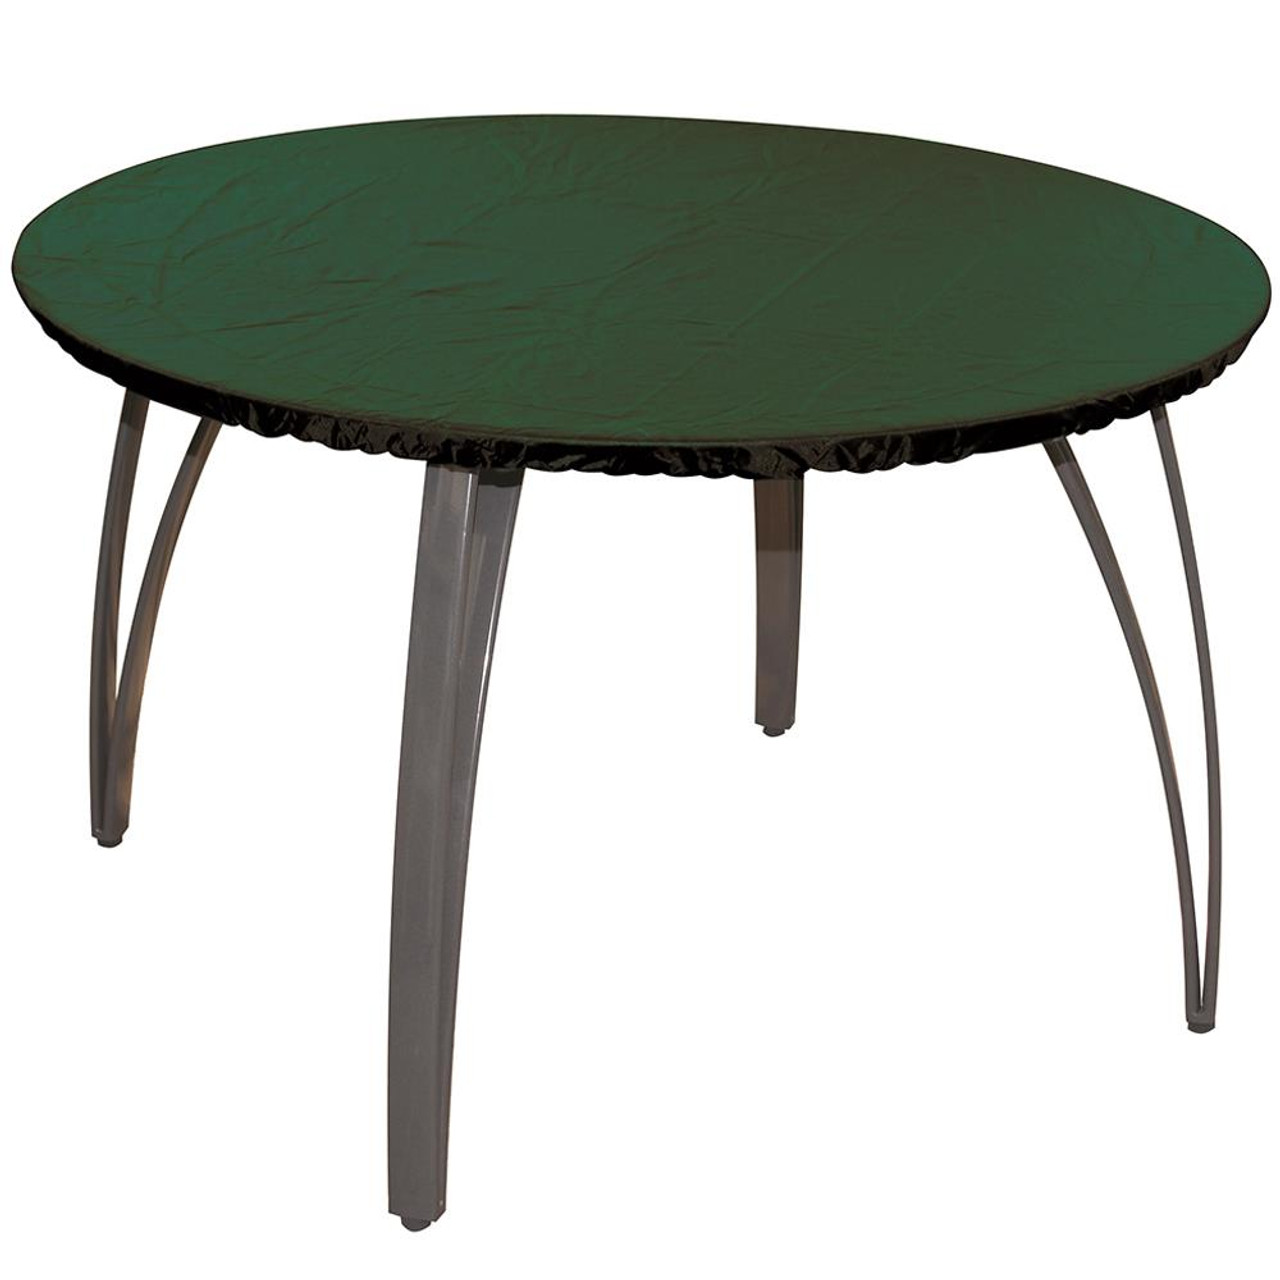 Bosmere Protector 6000 Circular Table Top Cover 4/6 Seat